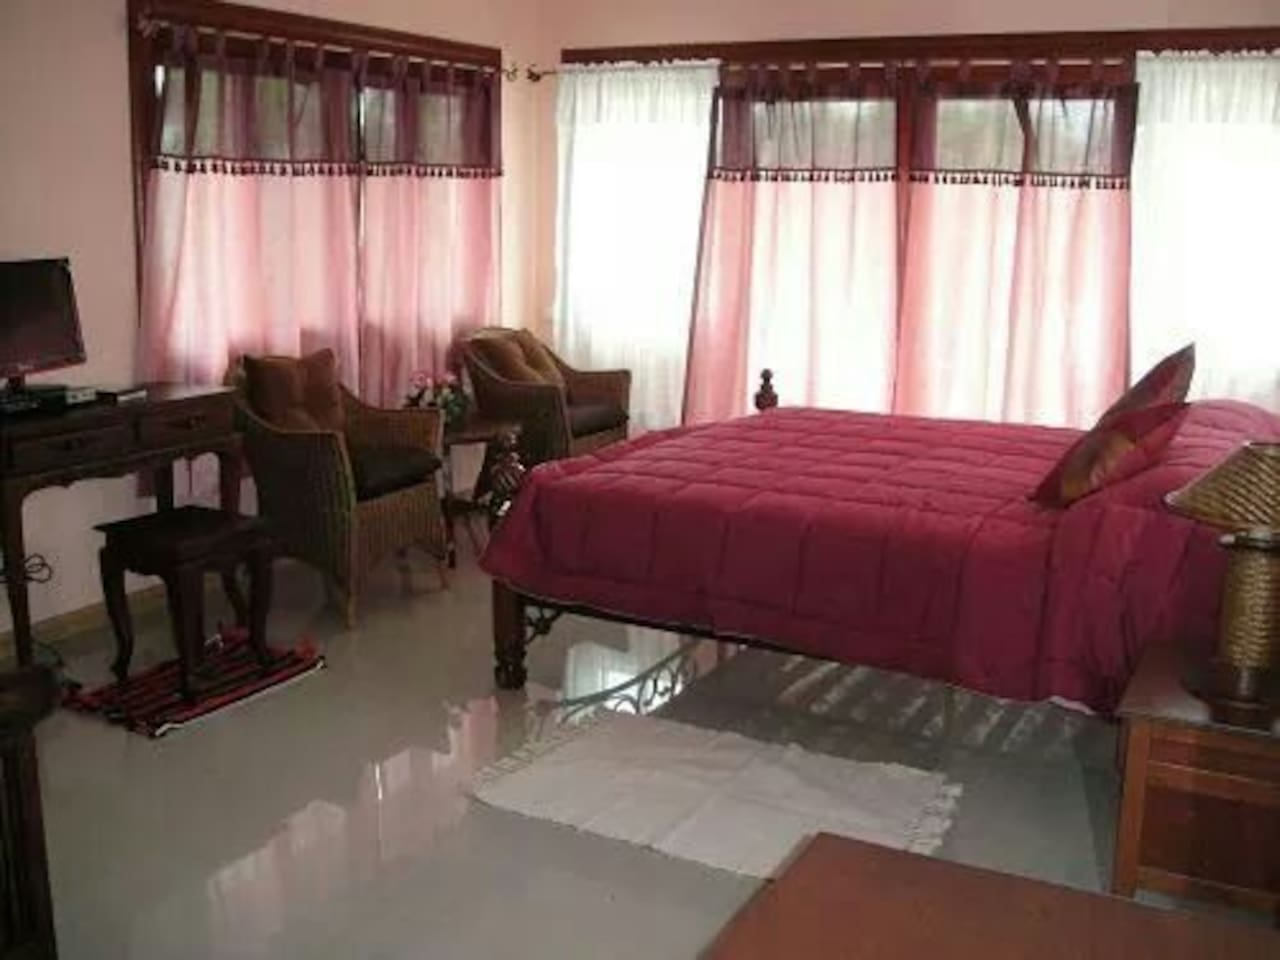 Room size 5x8m with king size bed.